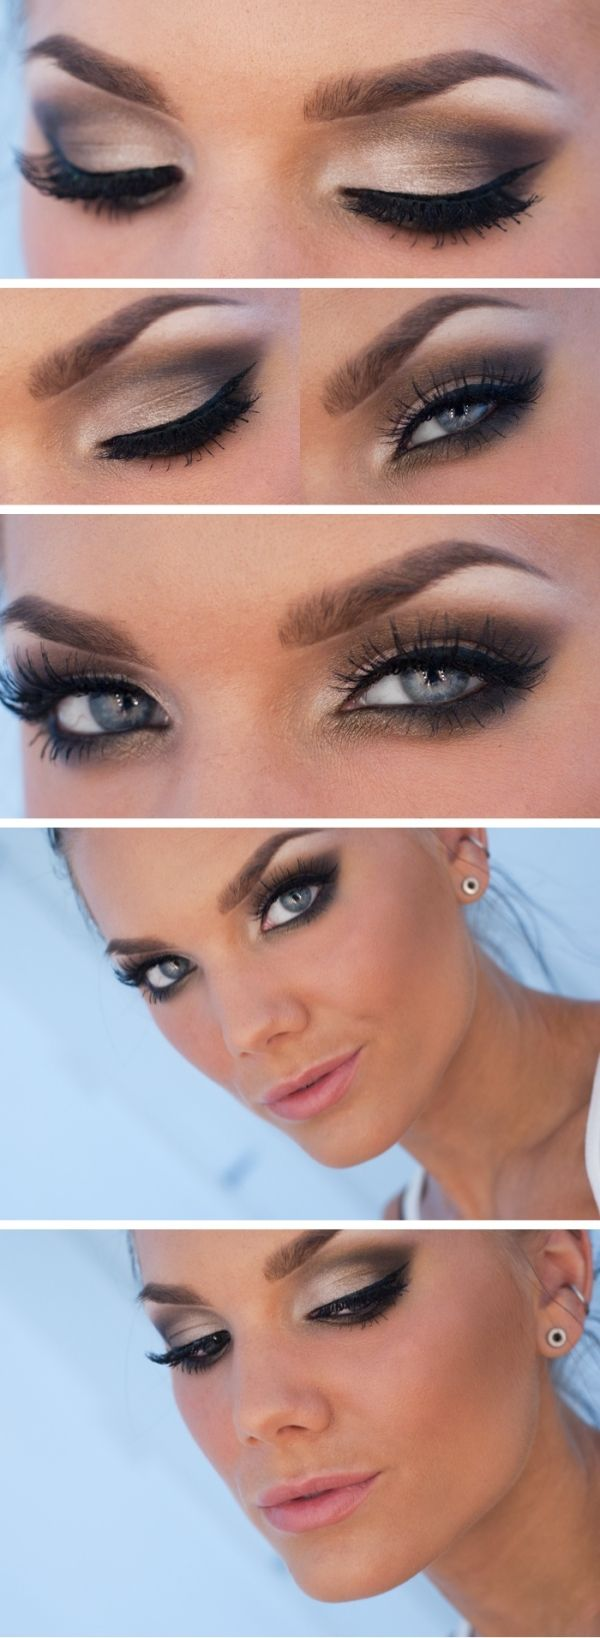 Todays look – If not forever, only for tonight - Linda Hallberg, makeup artist by Kimberly Lefevre